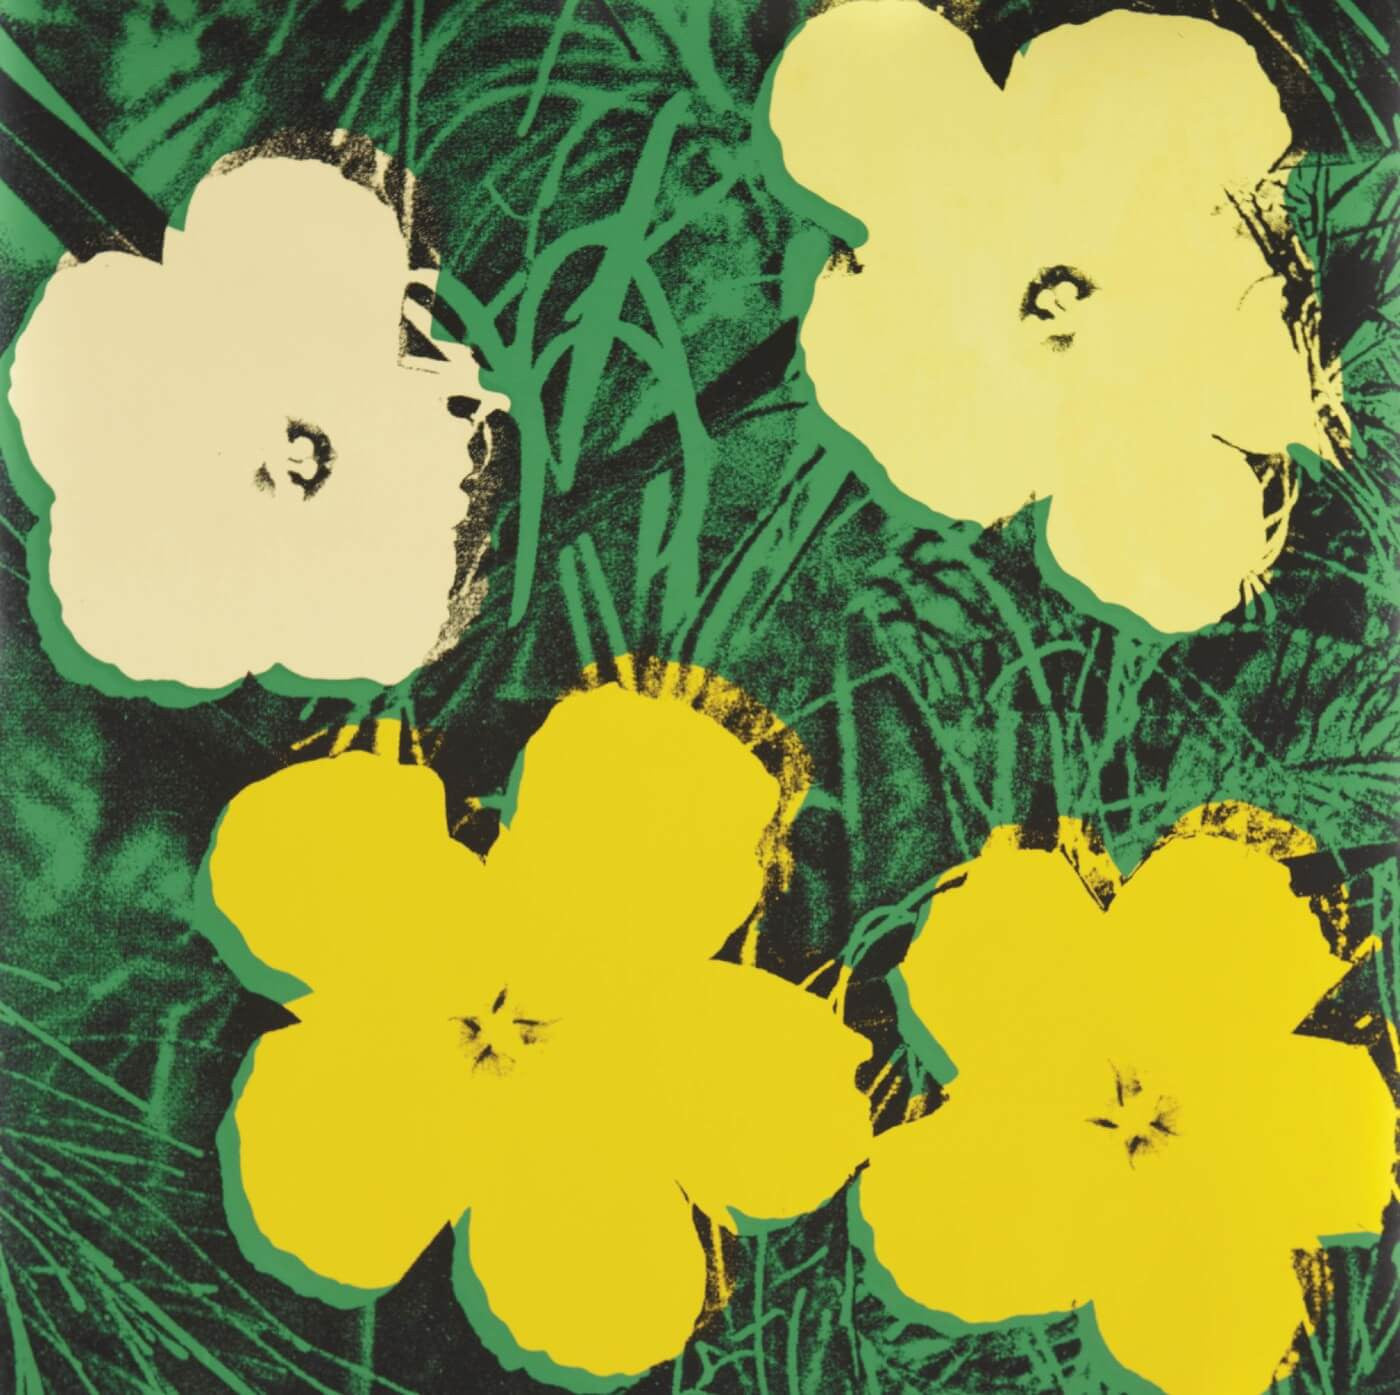 Pop Art - Andy Warhol - Flowers - Framed Prints by Andy Warhol | Buy ...